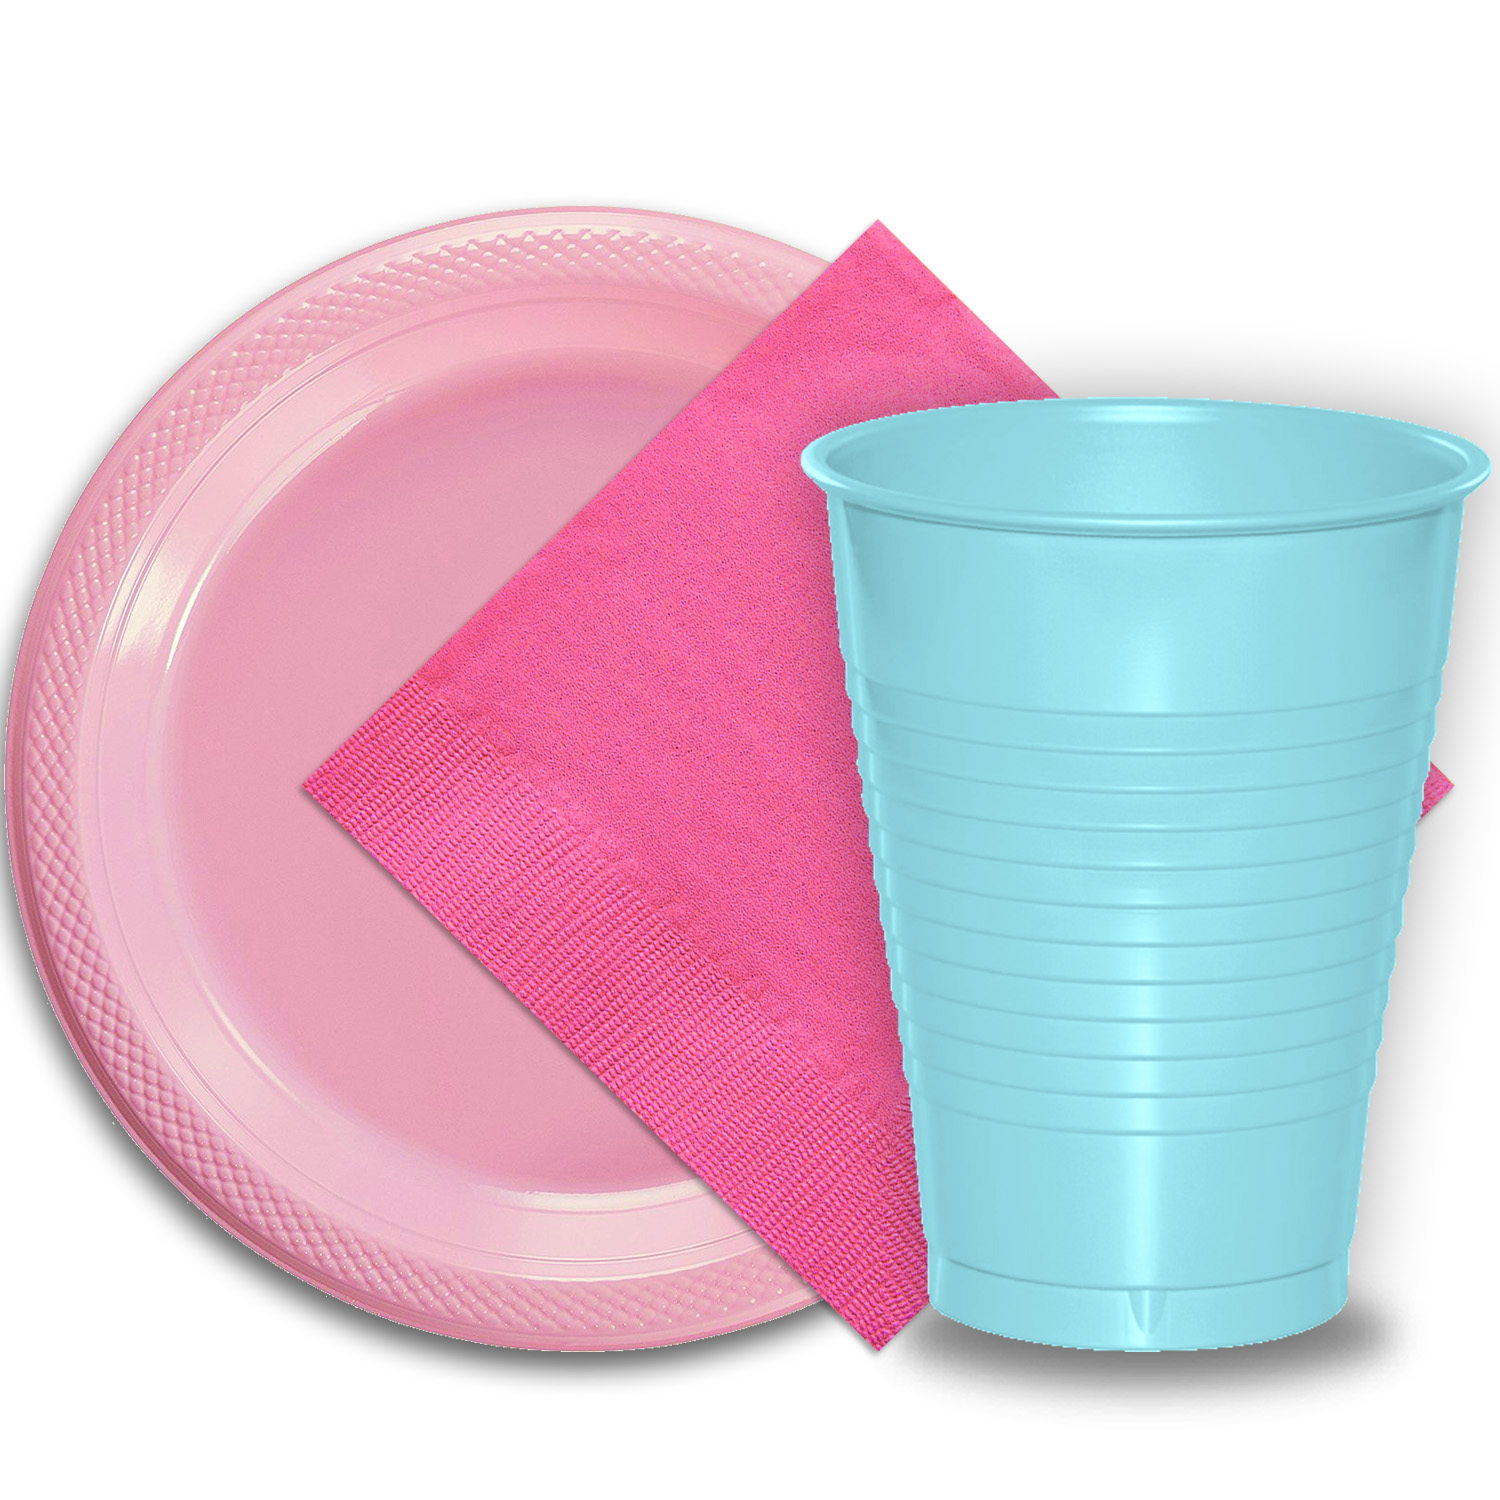 "50 Pink Plastic Plates (9""), 50 Light Blue Plastic Cups (12 oz.), and 50 Hot Pink Paper Napkins, Dazzelling Colored Disposable Party Supplies Tableware Set for Fifty Guests."